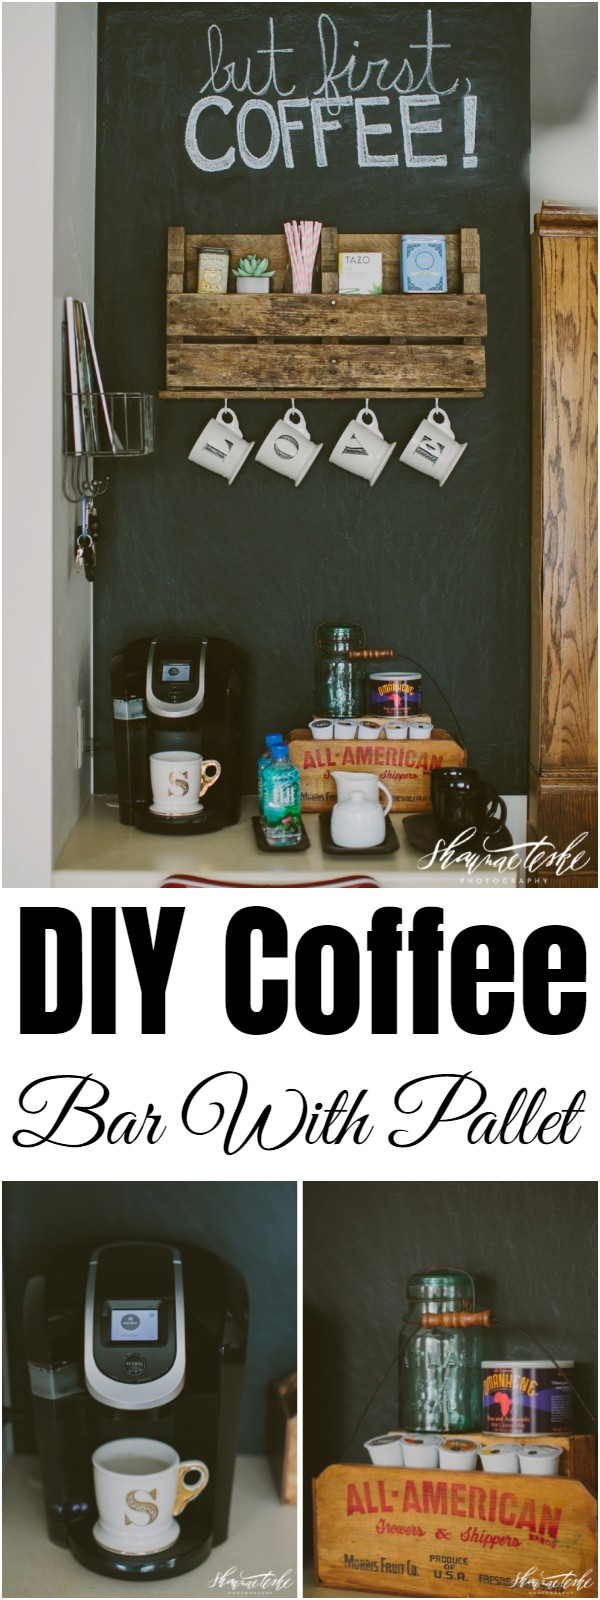 DIY Coffee Bar With Pallet